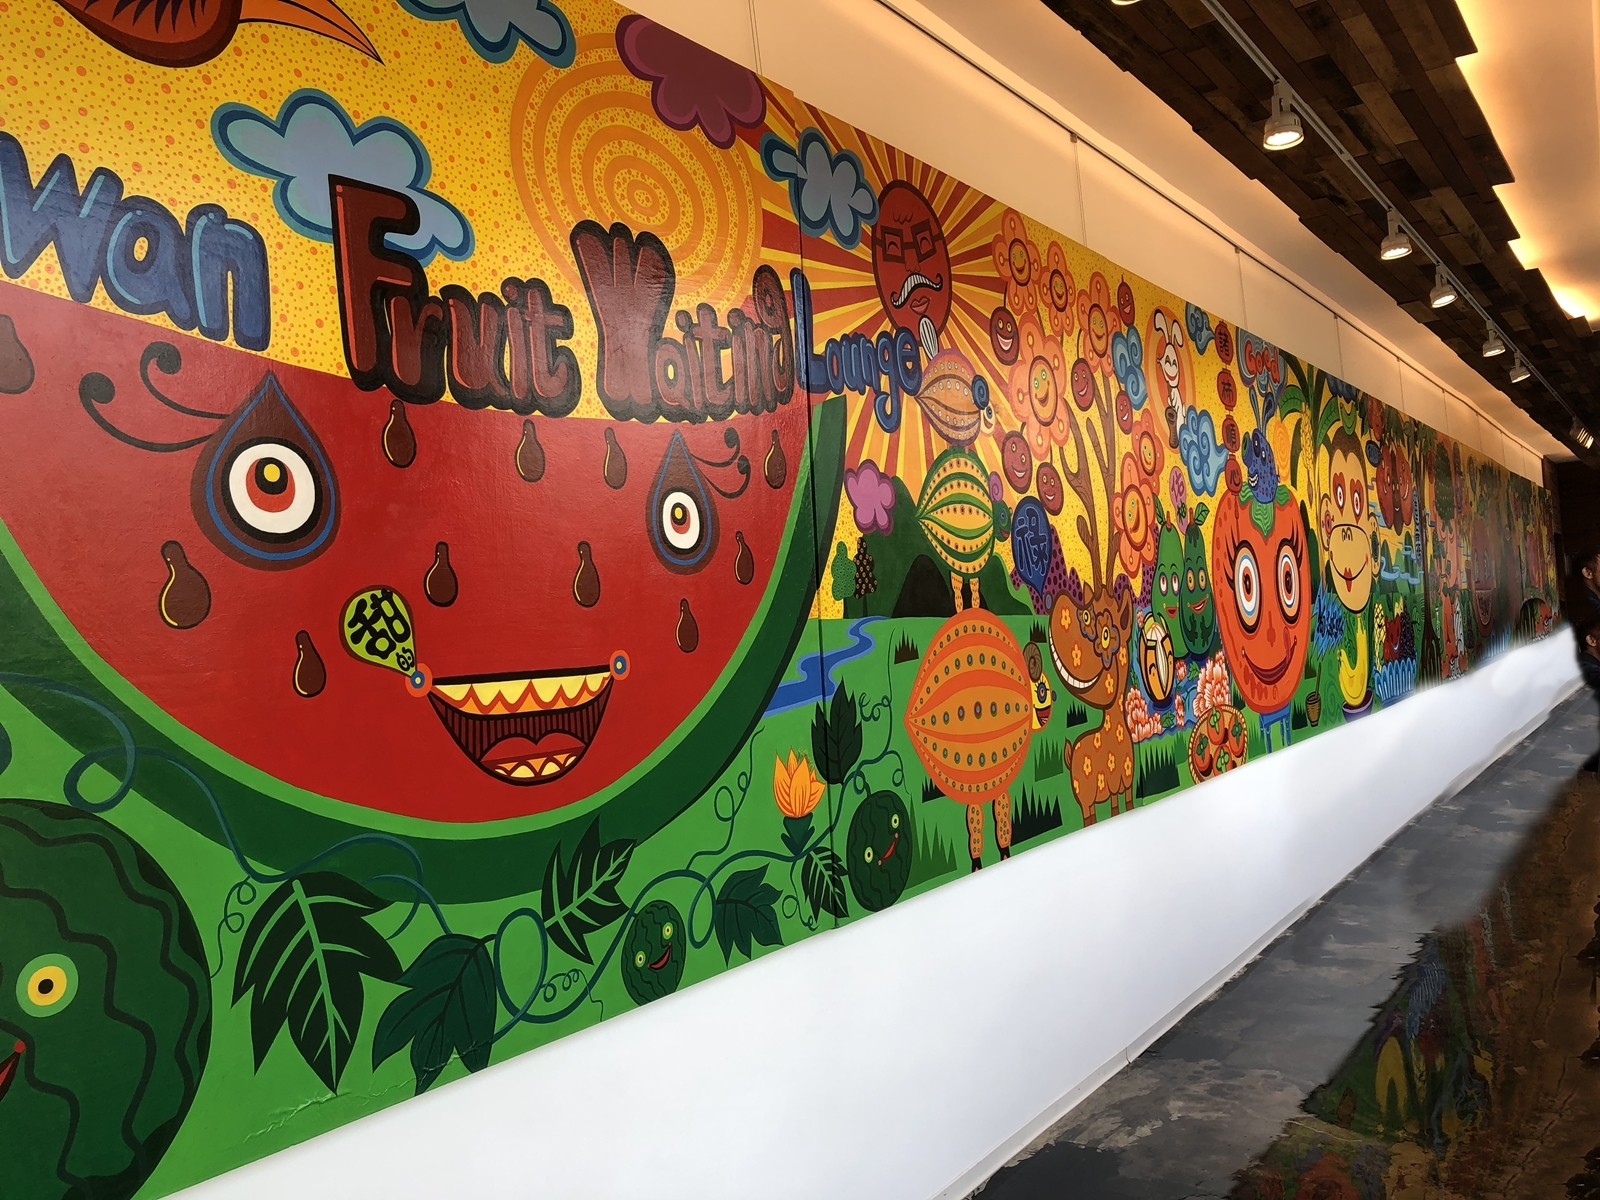 The wall of Hung Yi Art Gallery's lounge is decorated with artist's work. (Image: Billy Shyu / Visions Times)